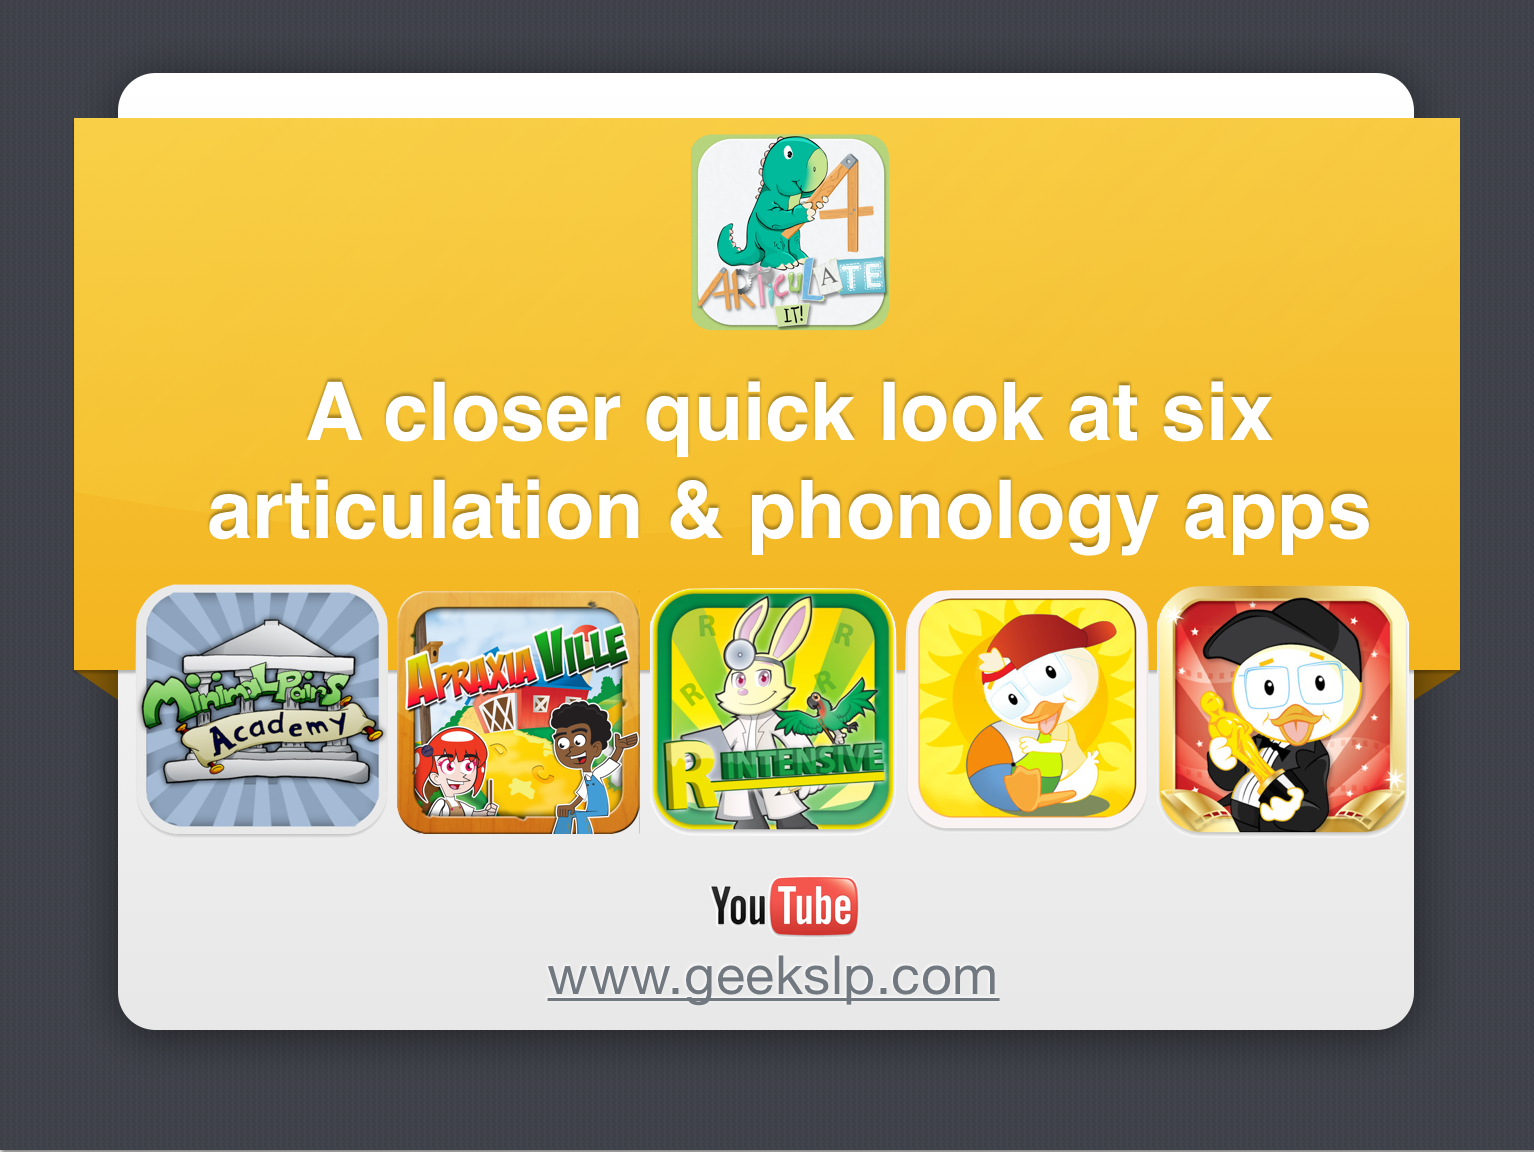 A closer quick look at six articulation & phonology apps